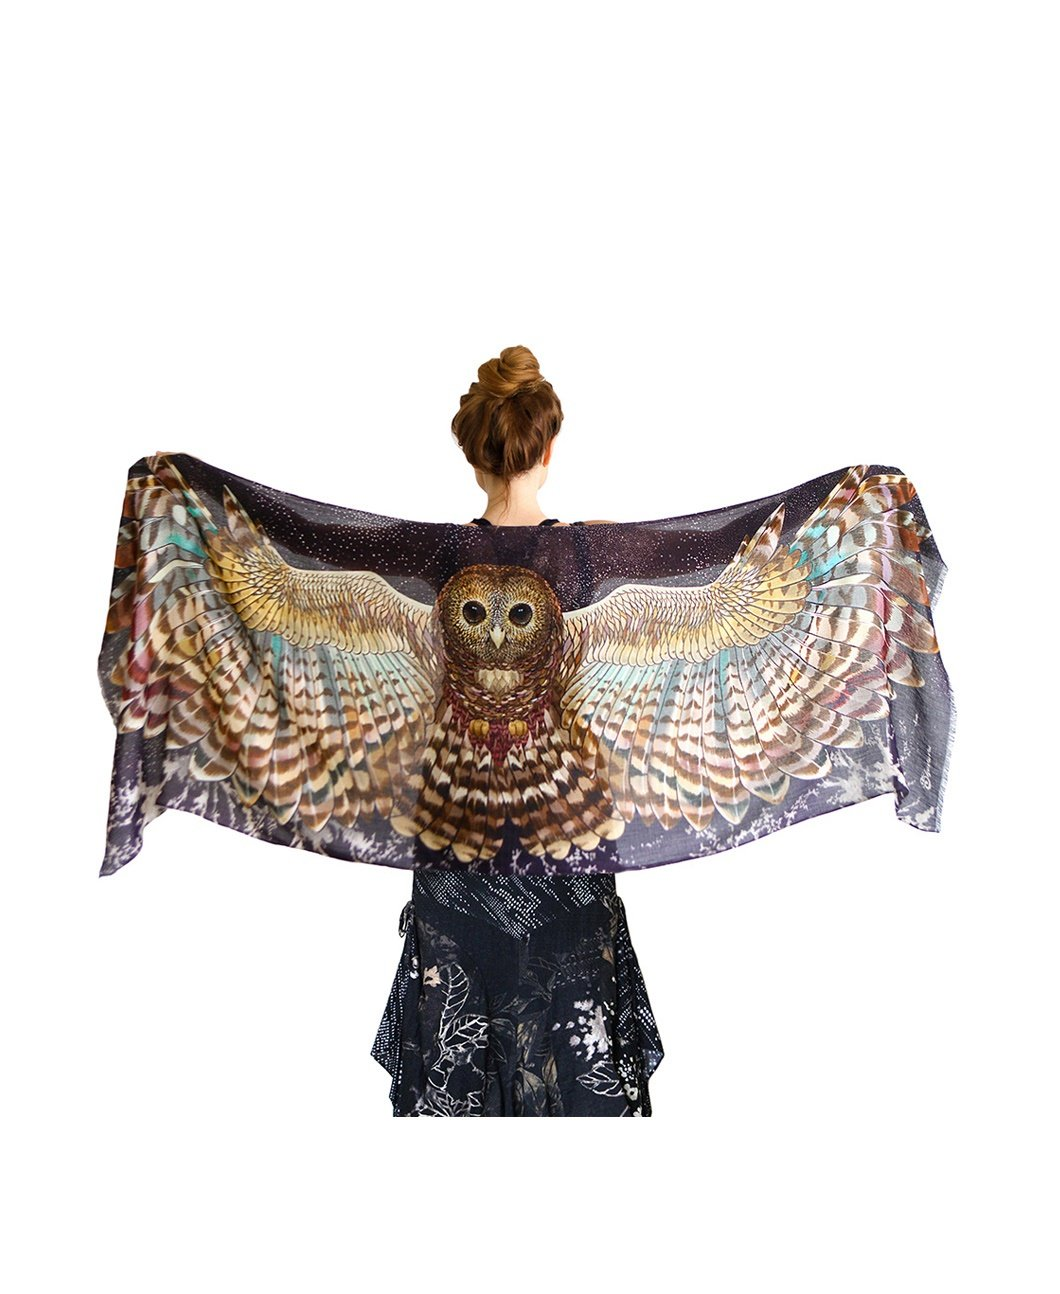 Night Owl Wings Scarf - Hand Painted Wide Spread Owl Wings. Silk & Cashmere